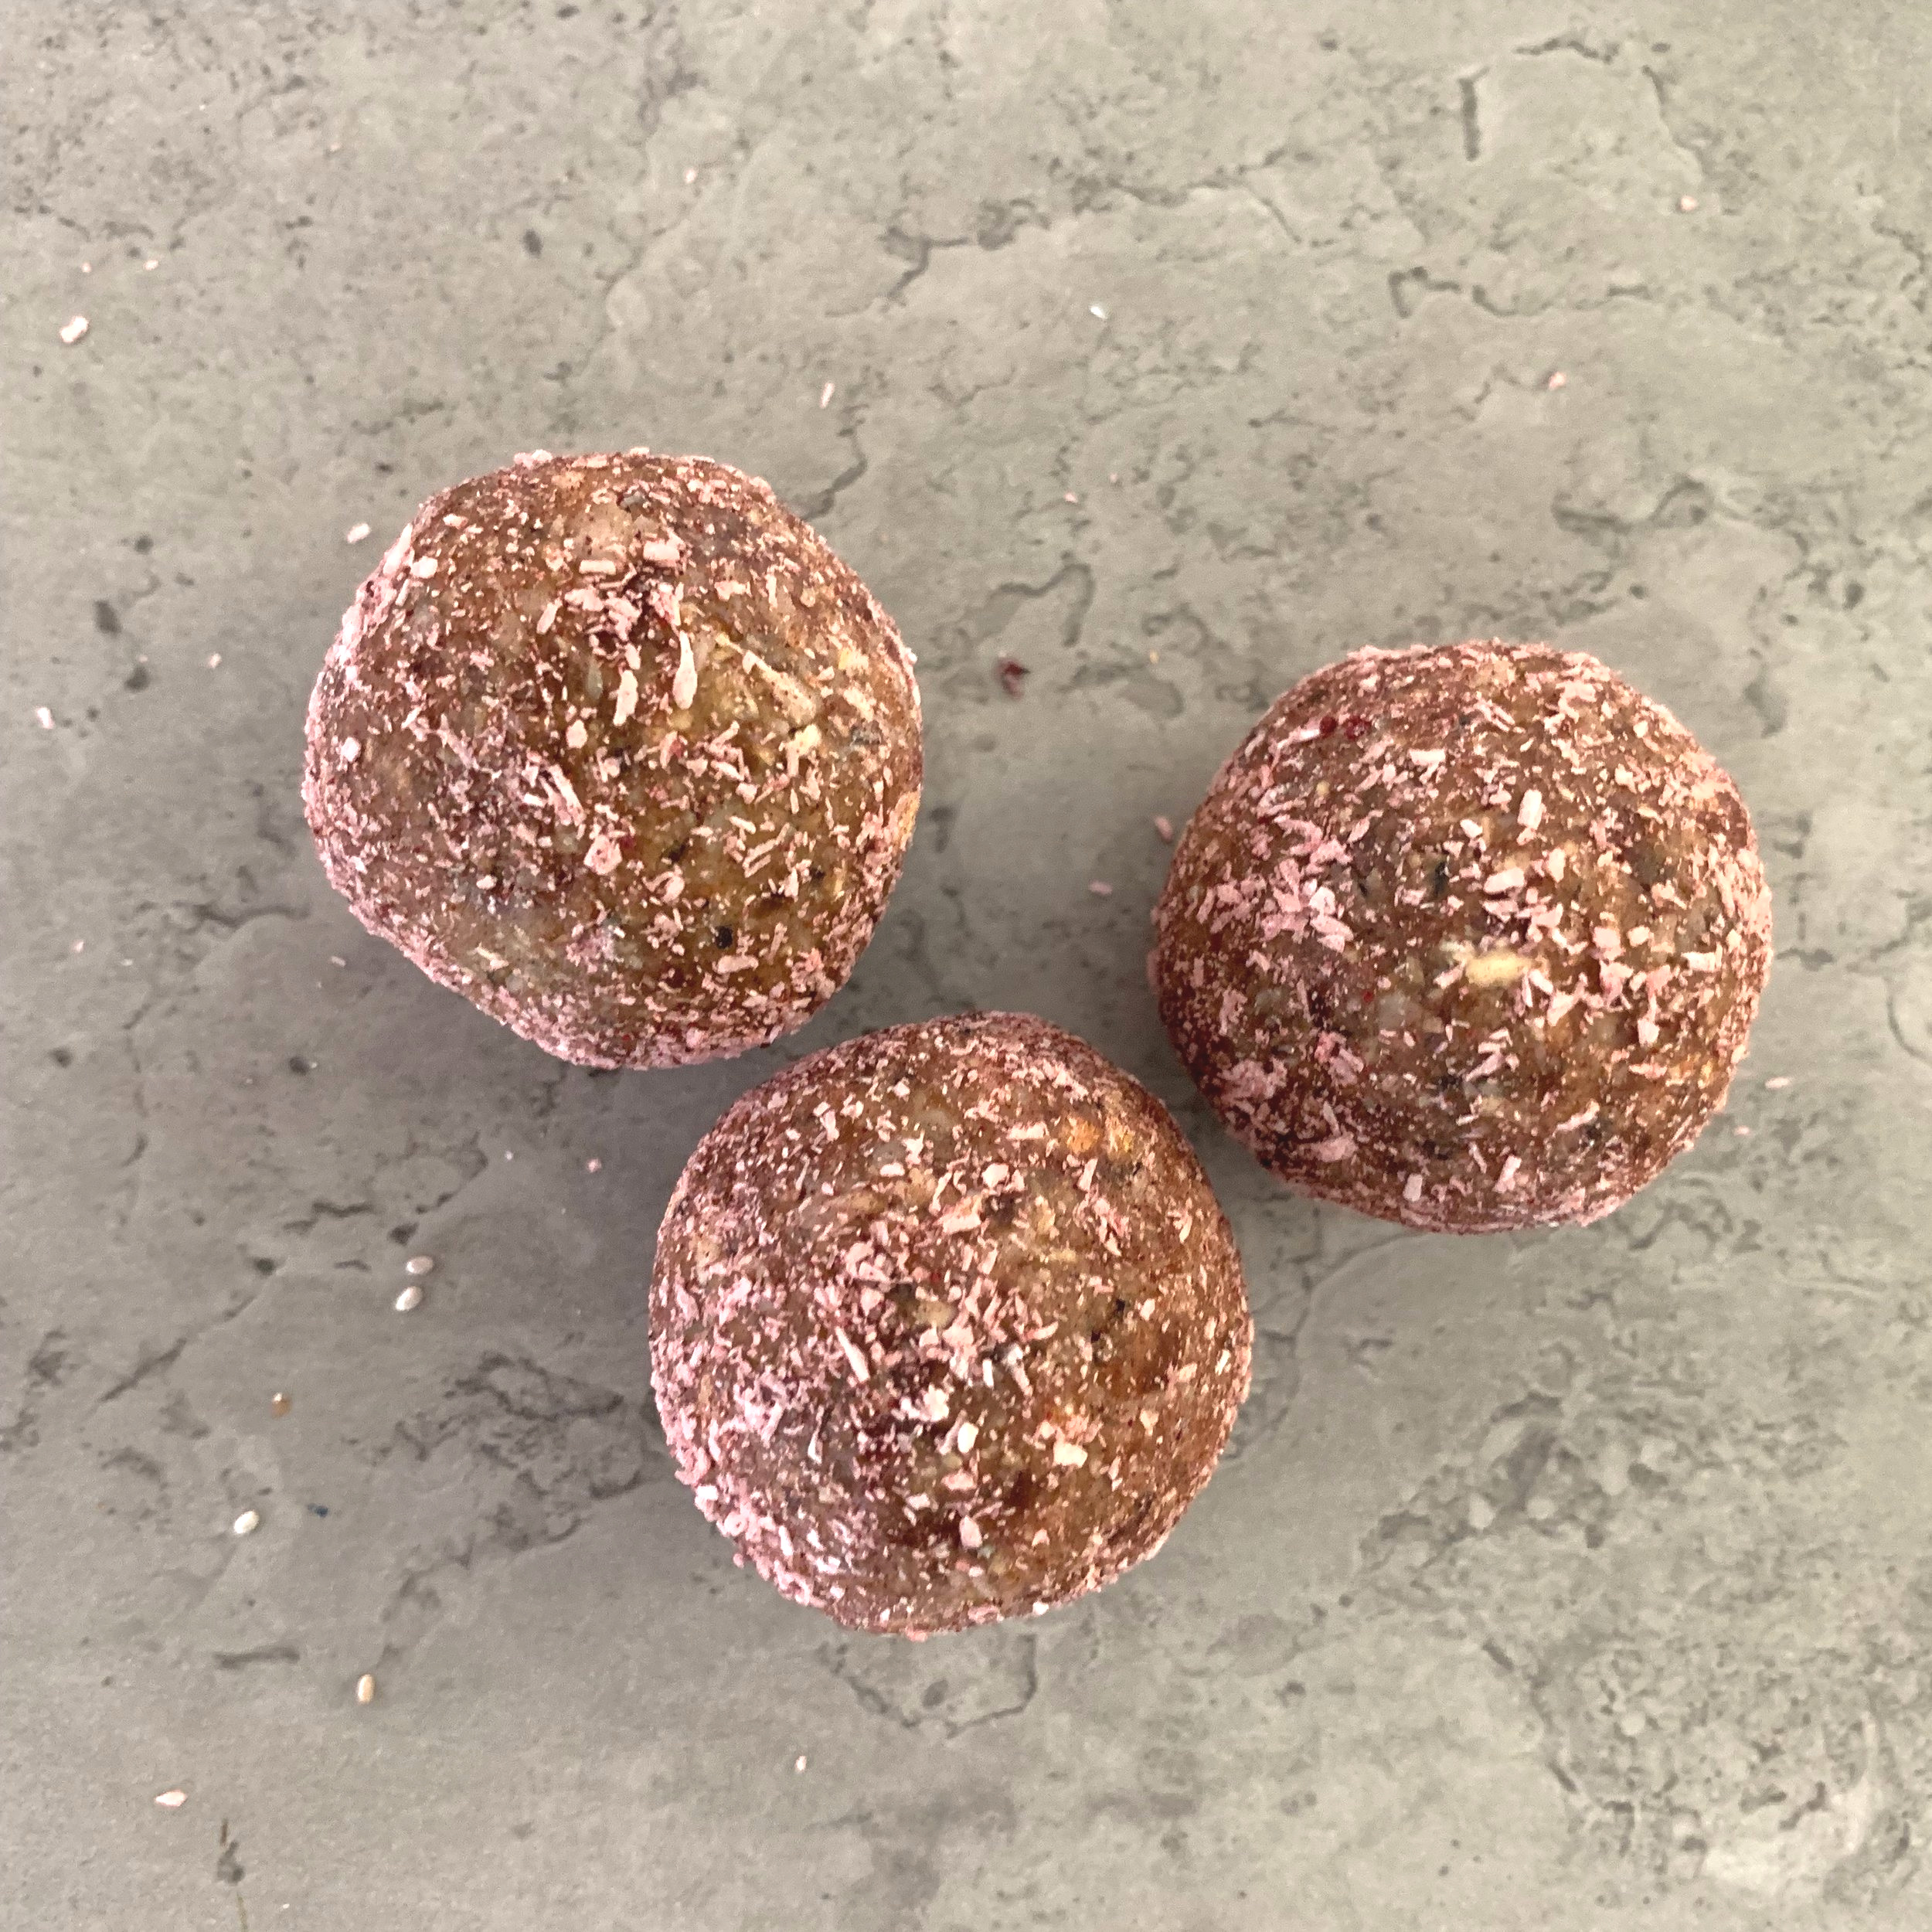 CARDAMOM BLISS BALL Ingredients: Oat  (gluten free), sunflower seeds, dates, cardamom, coconut cream, coconut, beetroot powder, salt